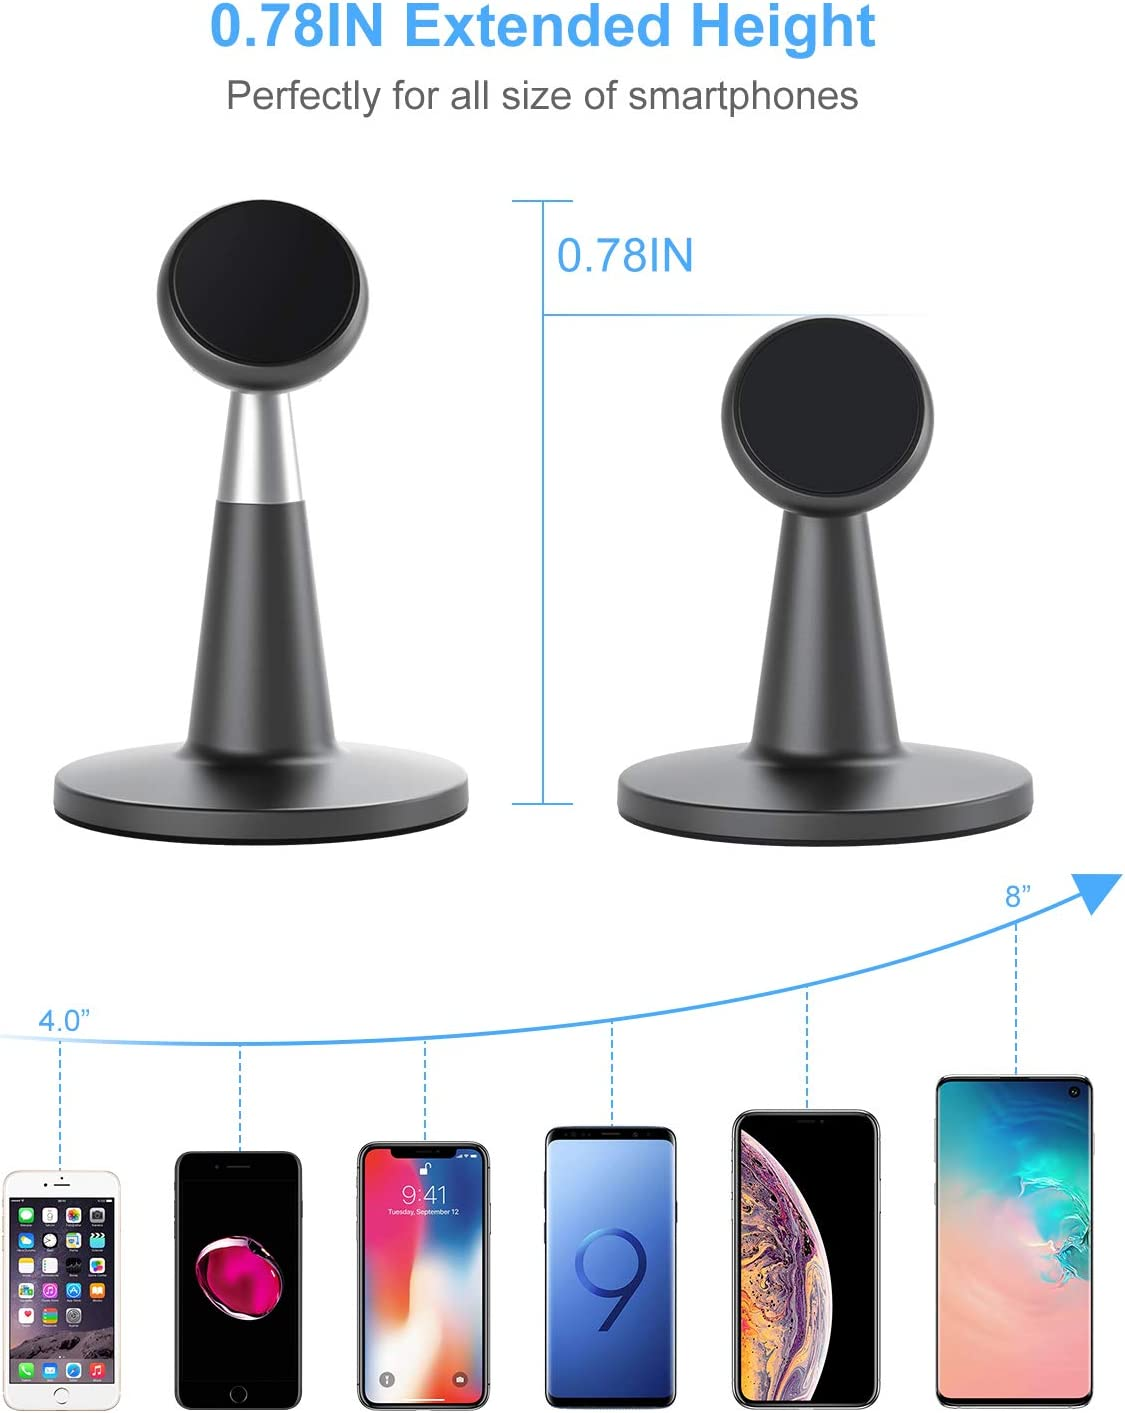 Upgraded Magnetic Cell Phone Stand for Desk Samsung Google Pixel and More SUPERONE Desktop Phone Holder Compatible with iPhone 11 Pro Xs Xs Max Xr X 8 7 6